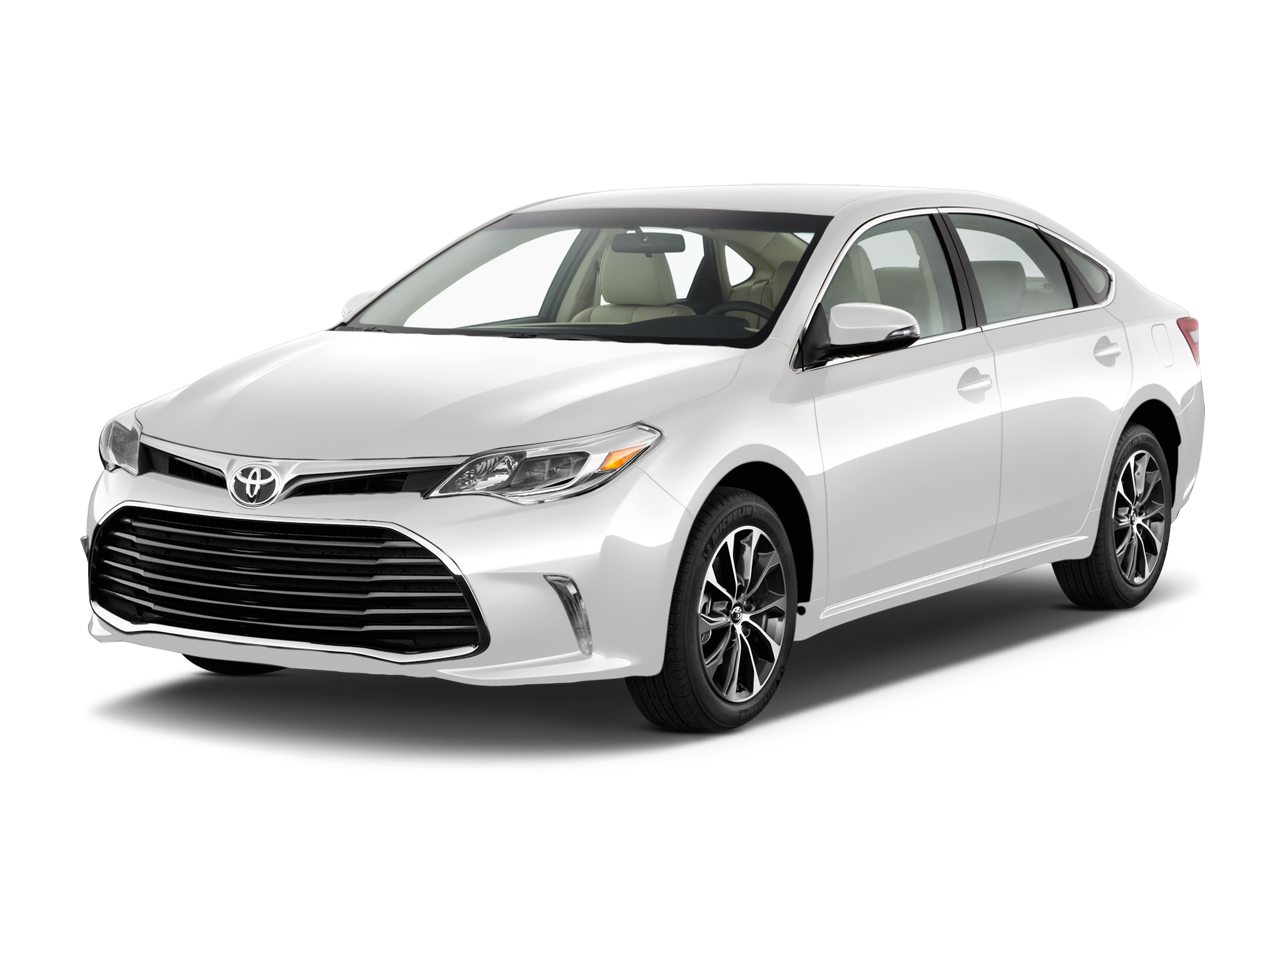 new 2017 toyota avalon xle near herculaneum mo twin city toyota. Black Bedroom Furniture Sets. Home Design Ideas